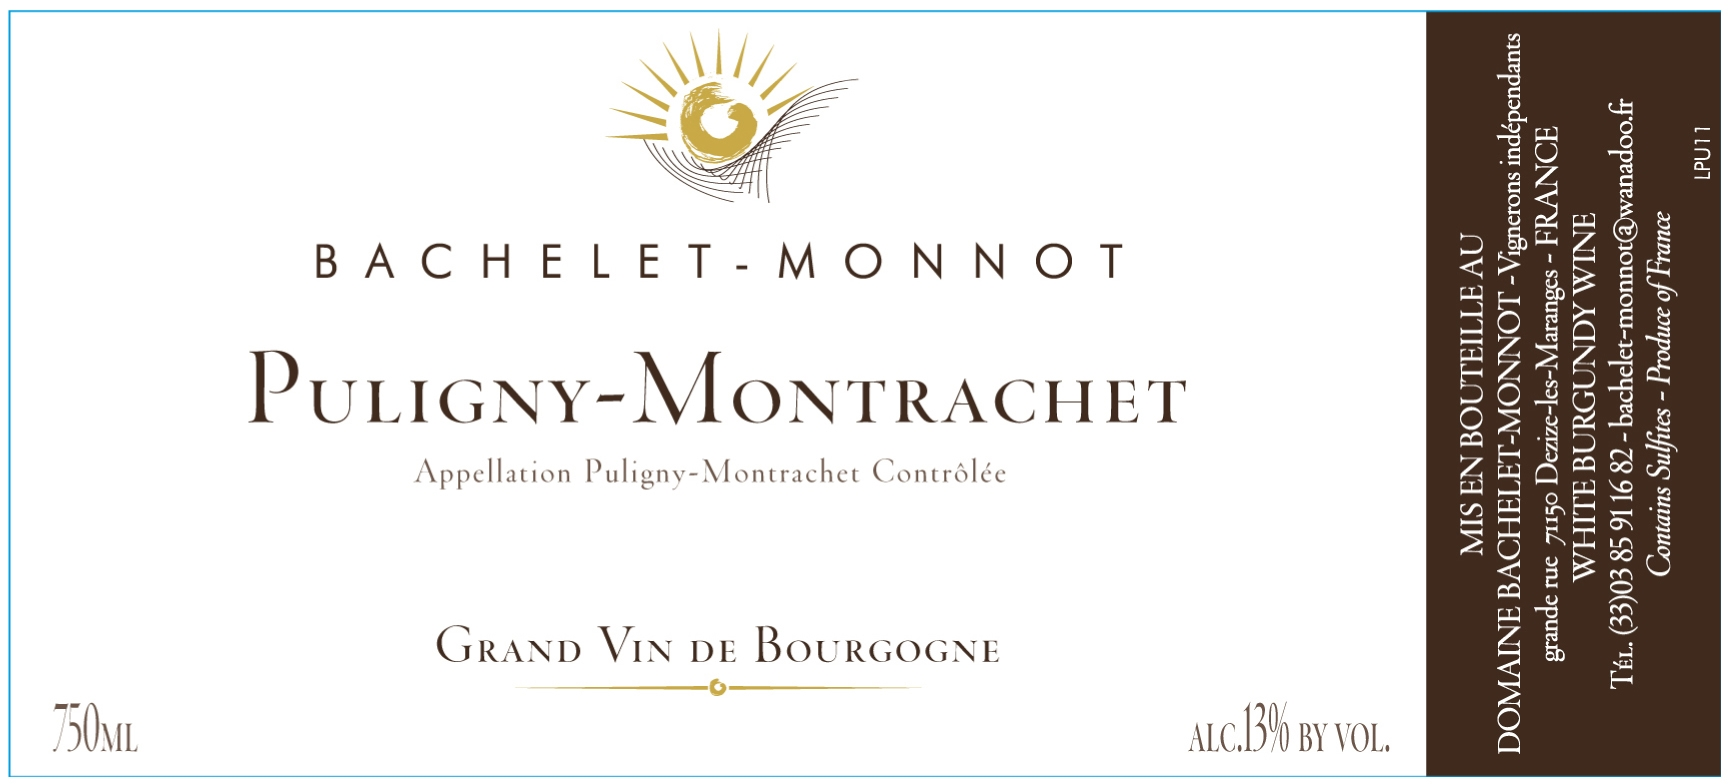 Domaine Bachelet-Monnot label